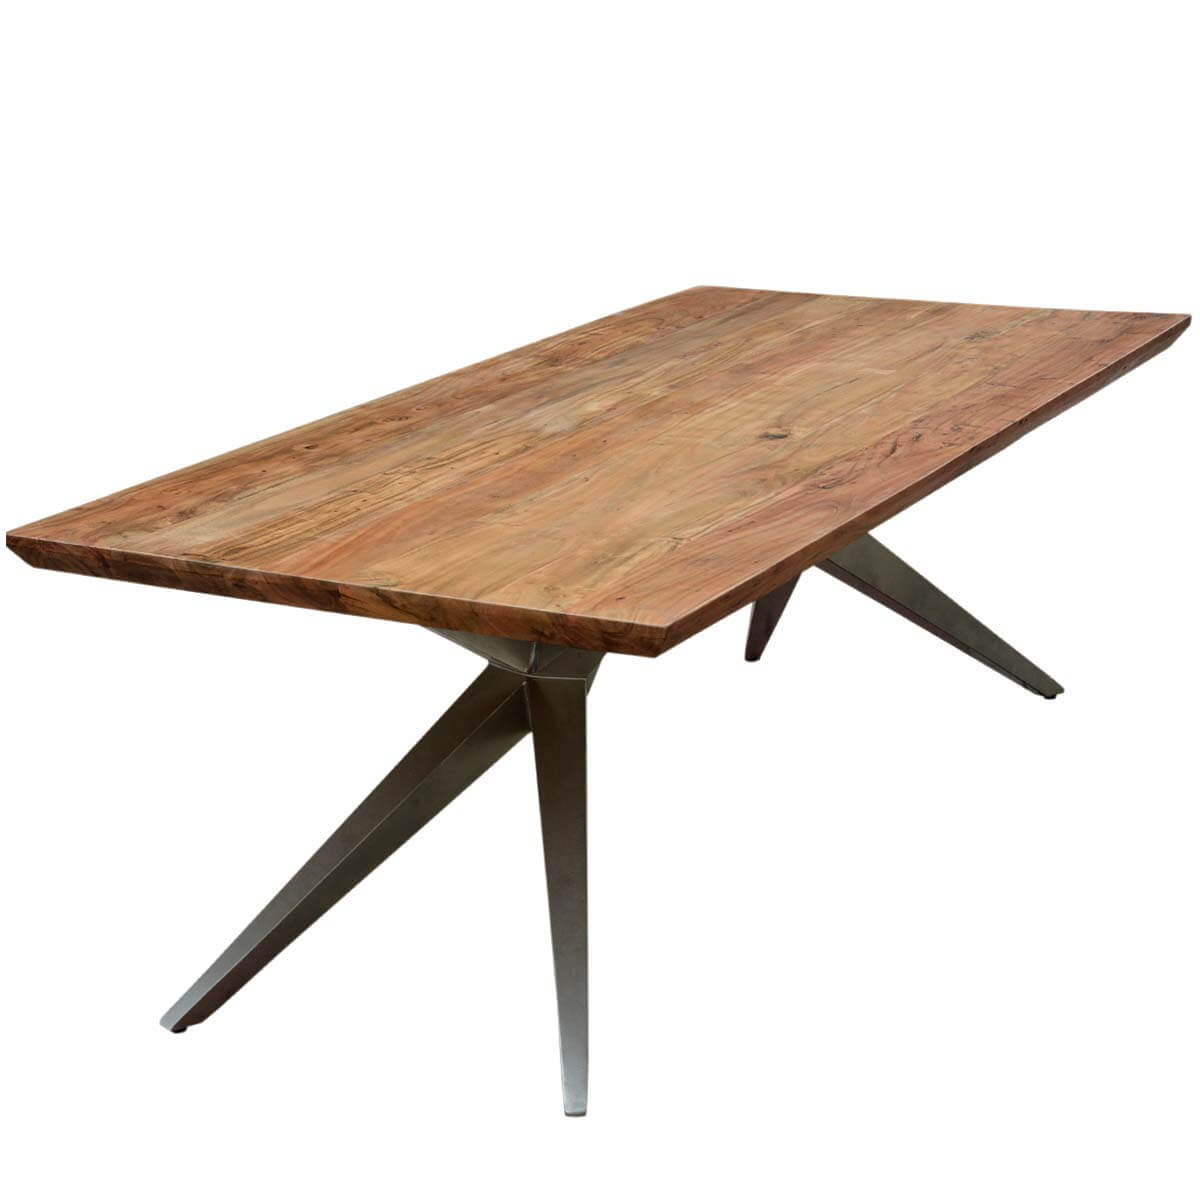 Unique industrial spyder loft solid wood hankin large for Large dining table